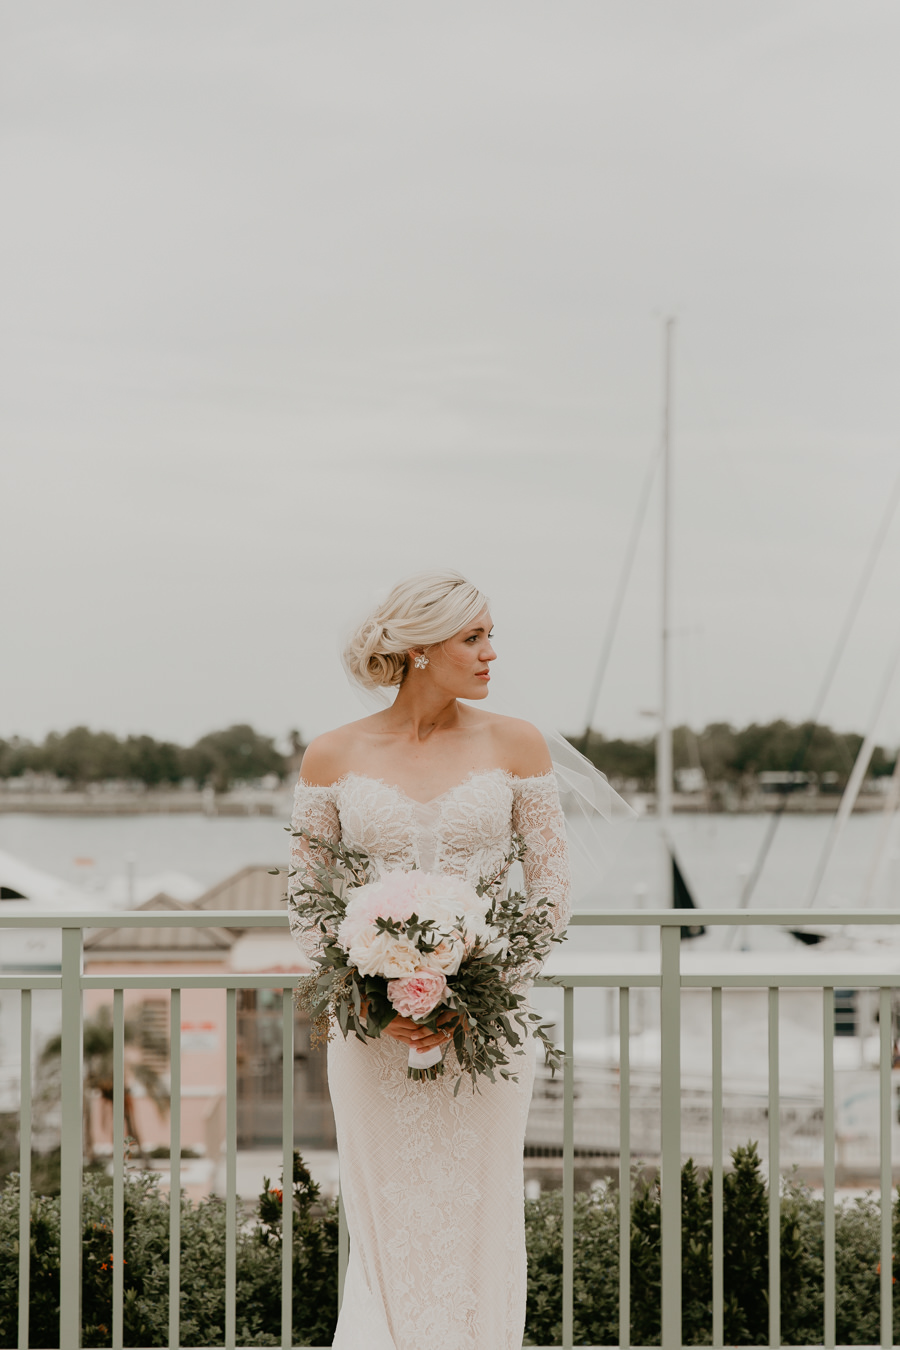 Neely rose gold boho wedding in st pete vinoy A and be Miami first baptist of st pete park shore grill Tampa Wedding Photographer -100.jpg